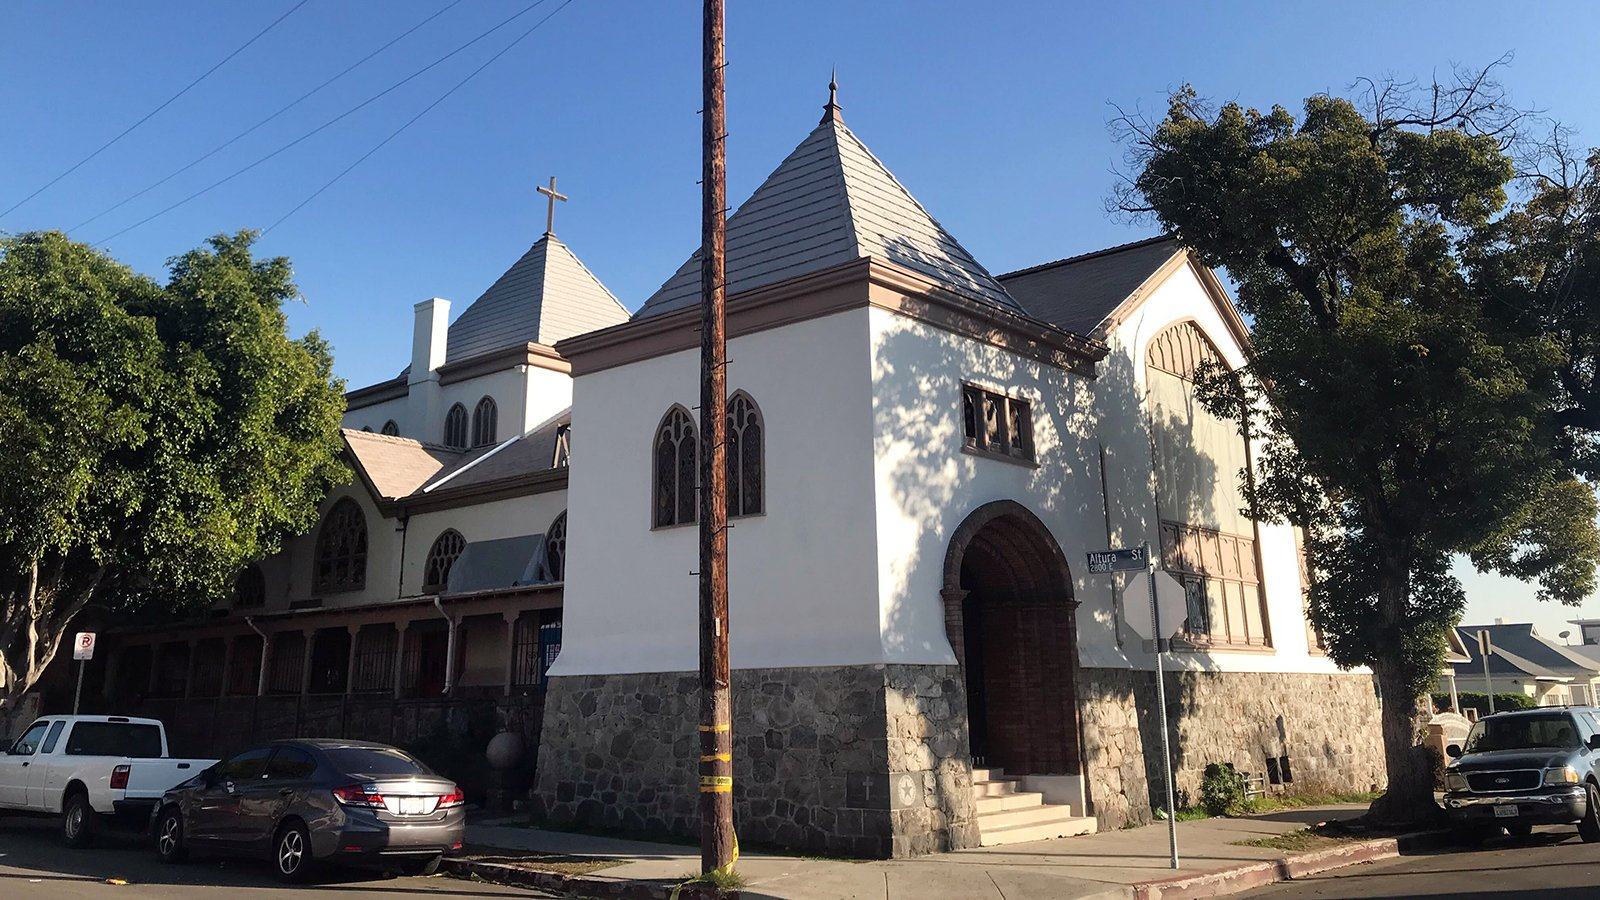 The Church of the Epiphany, in the Lincoln Heights neighborhood of Los Angeles, recently earned a spot on the National Register of Historic Places. The church is known as the birthplace of the Chicano movement in the 1960s. Photographed on Thursday, Feb. 4, 2021. RNS photo by Alejandra Molina